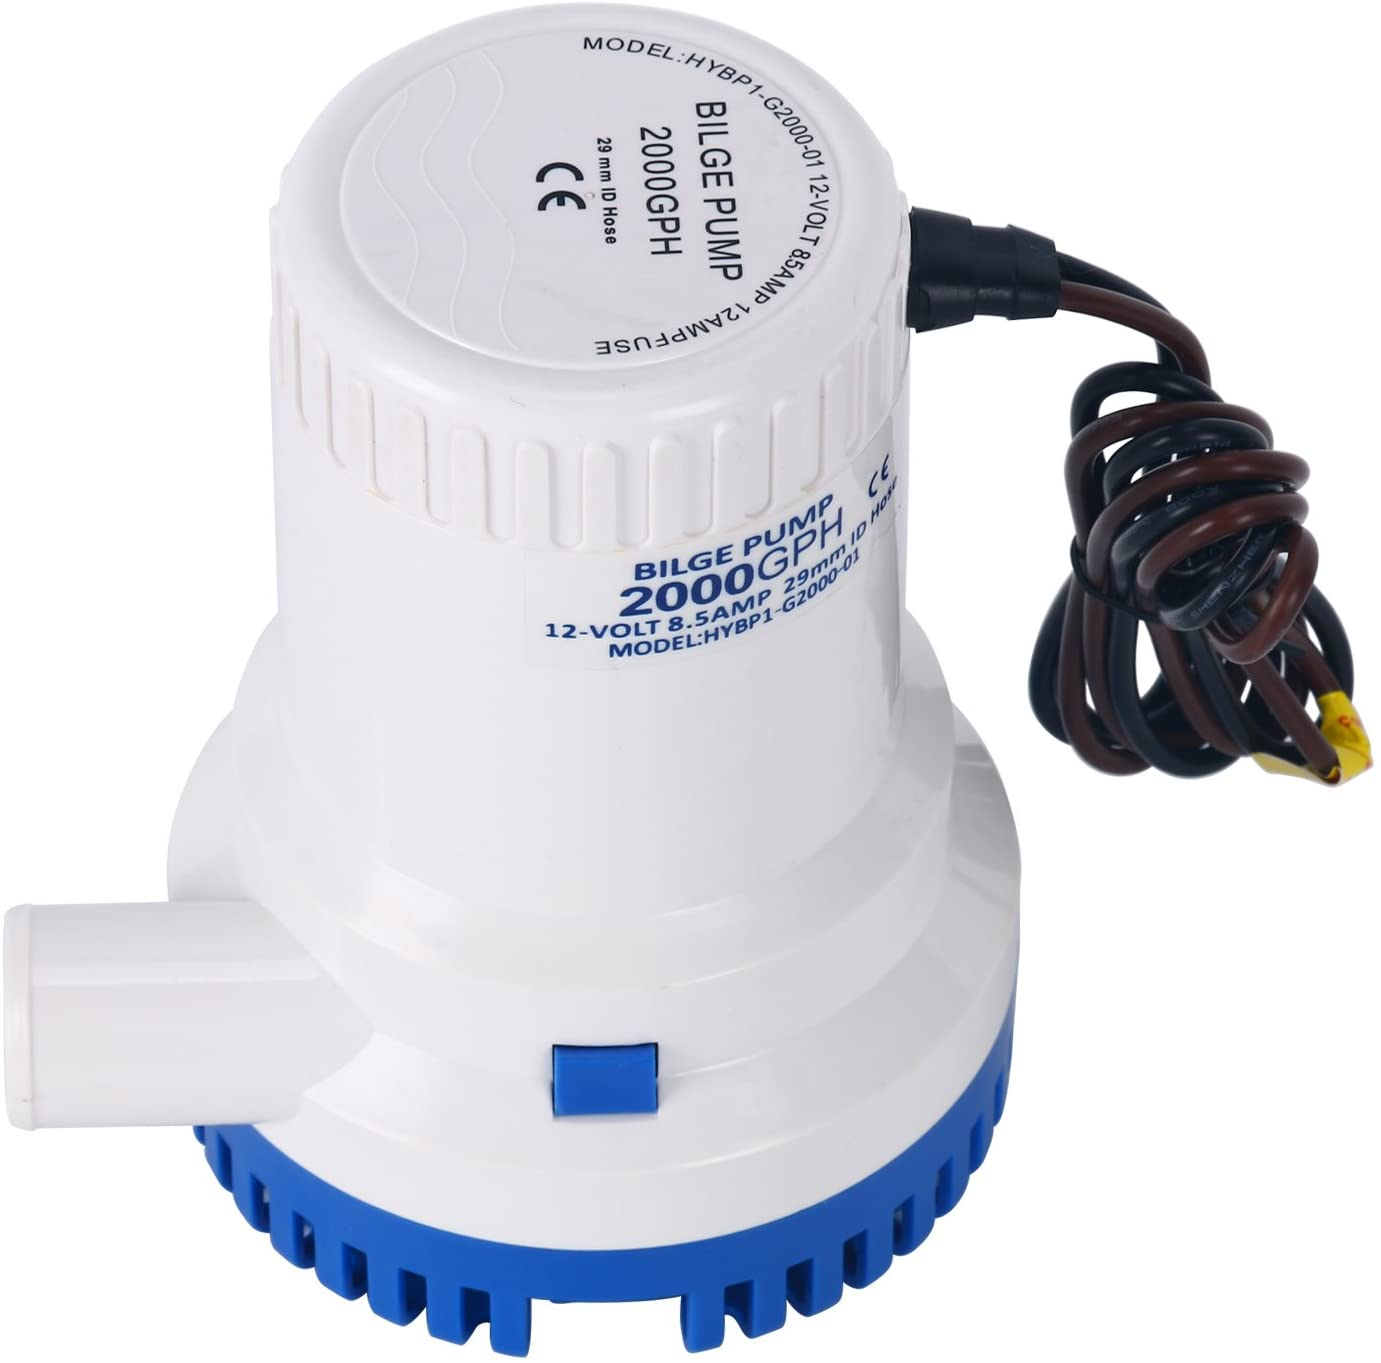 Small Pools and Fountains Camping PetierWeit 12V 2000GPH 1-1//8 Automatic Bilge Pump Submersible Pump Electric Pump for RV Boats